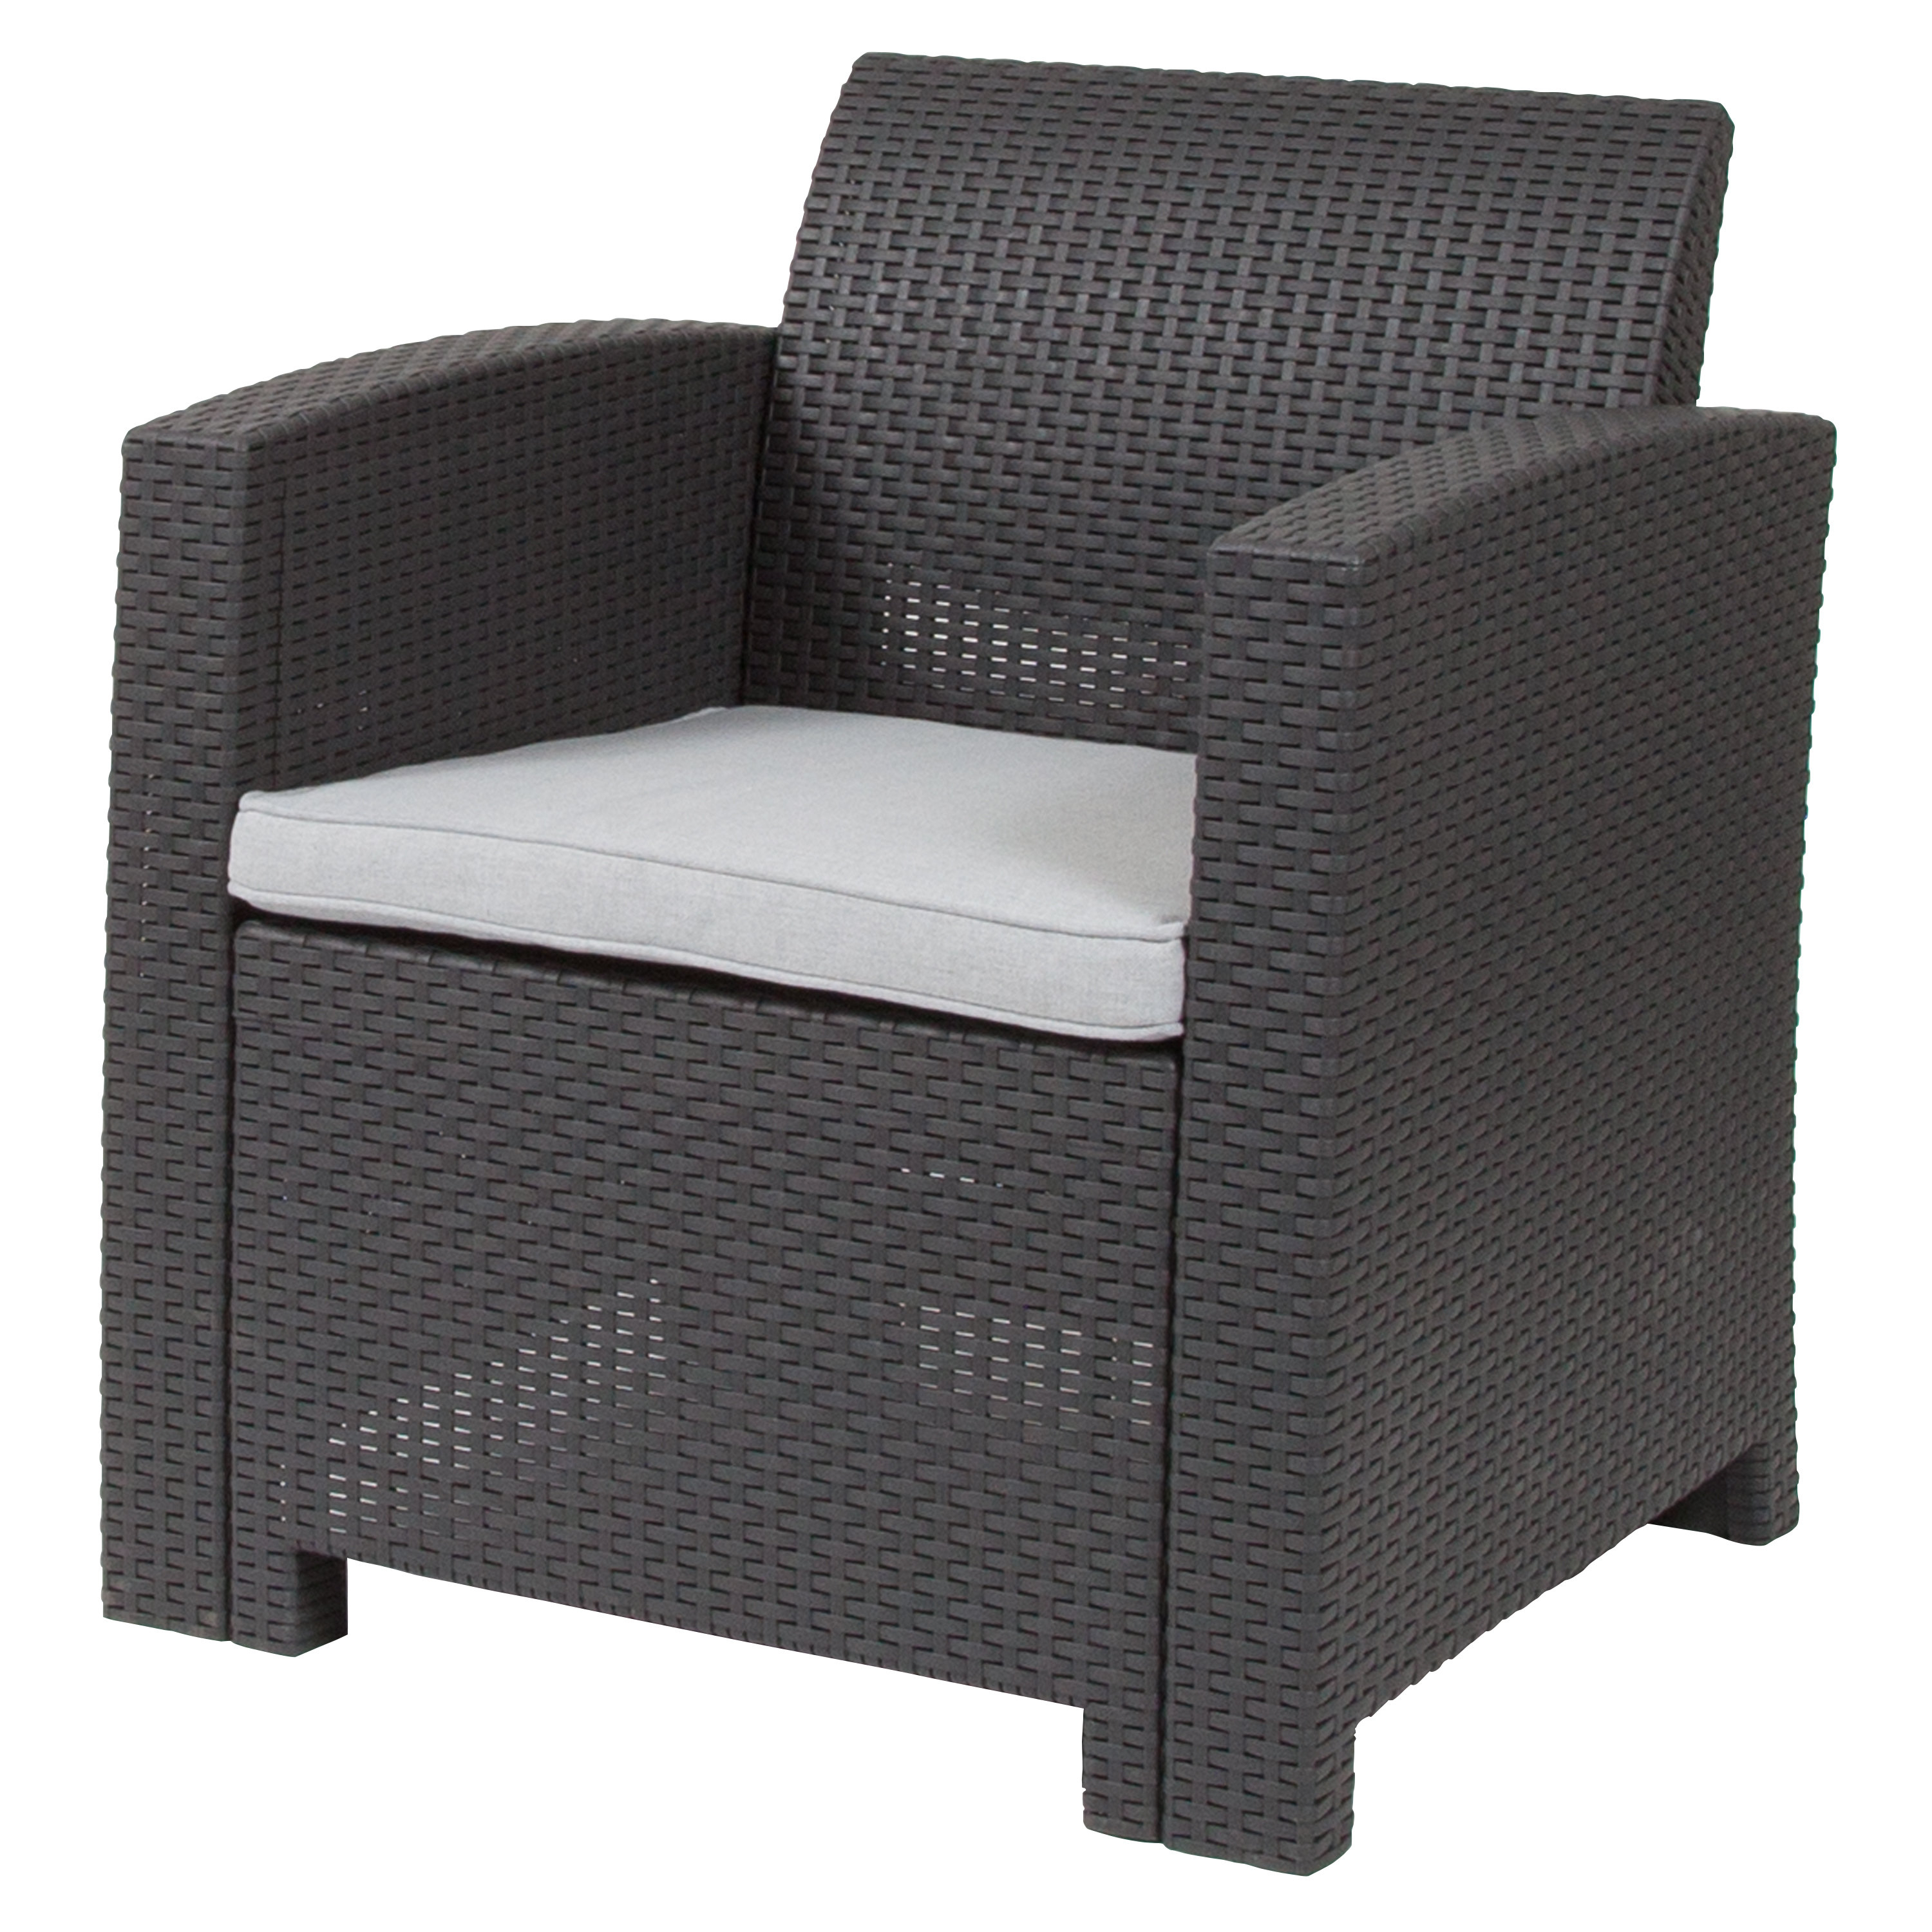 Breakwater Bay Stockwell Patio Chair With Cushion & Reviews Intended For Best And Newest Stockwell Patio Sofas With Cushions (View 1 of 20)